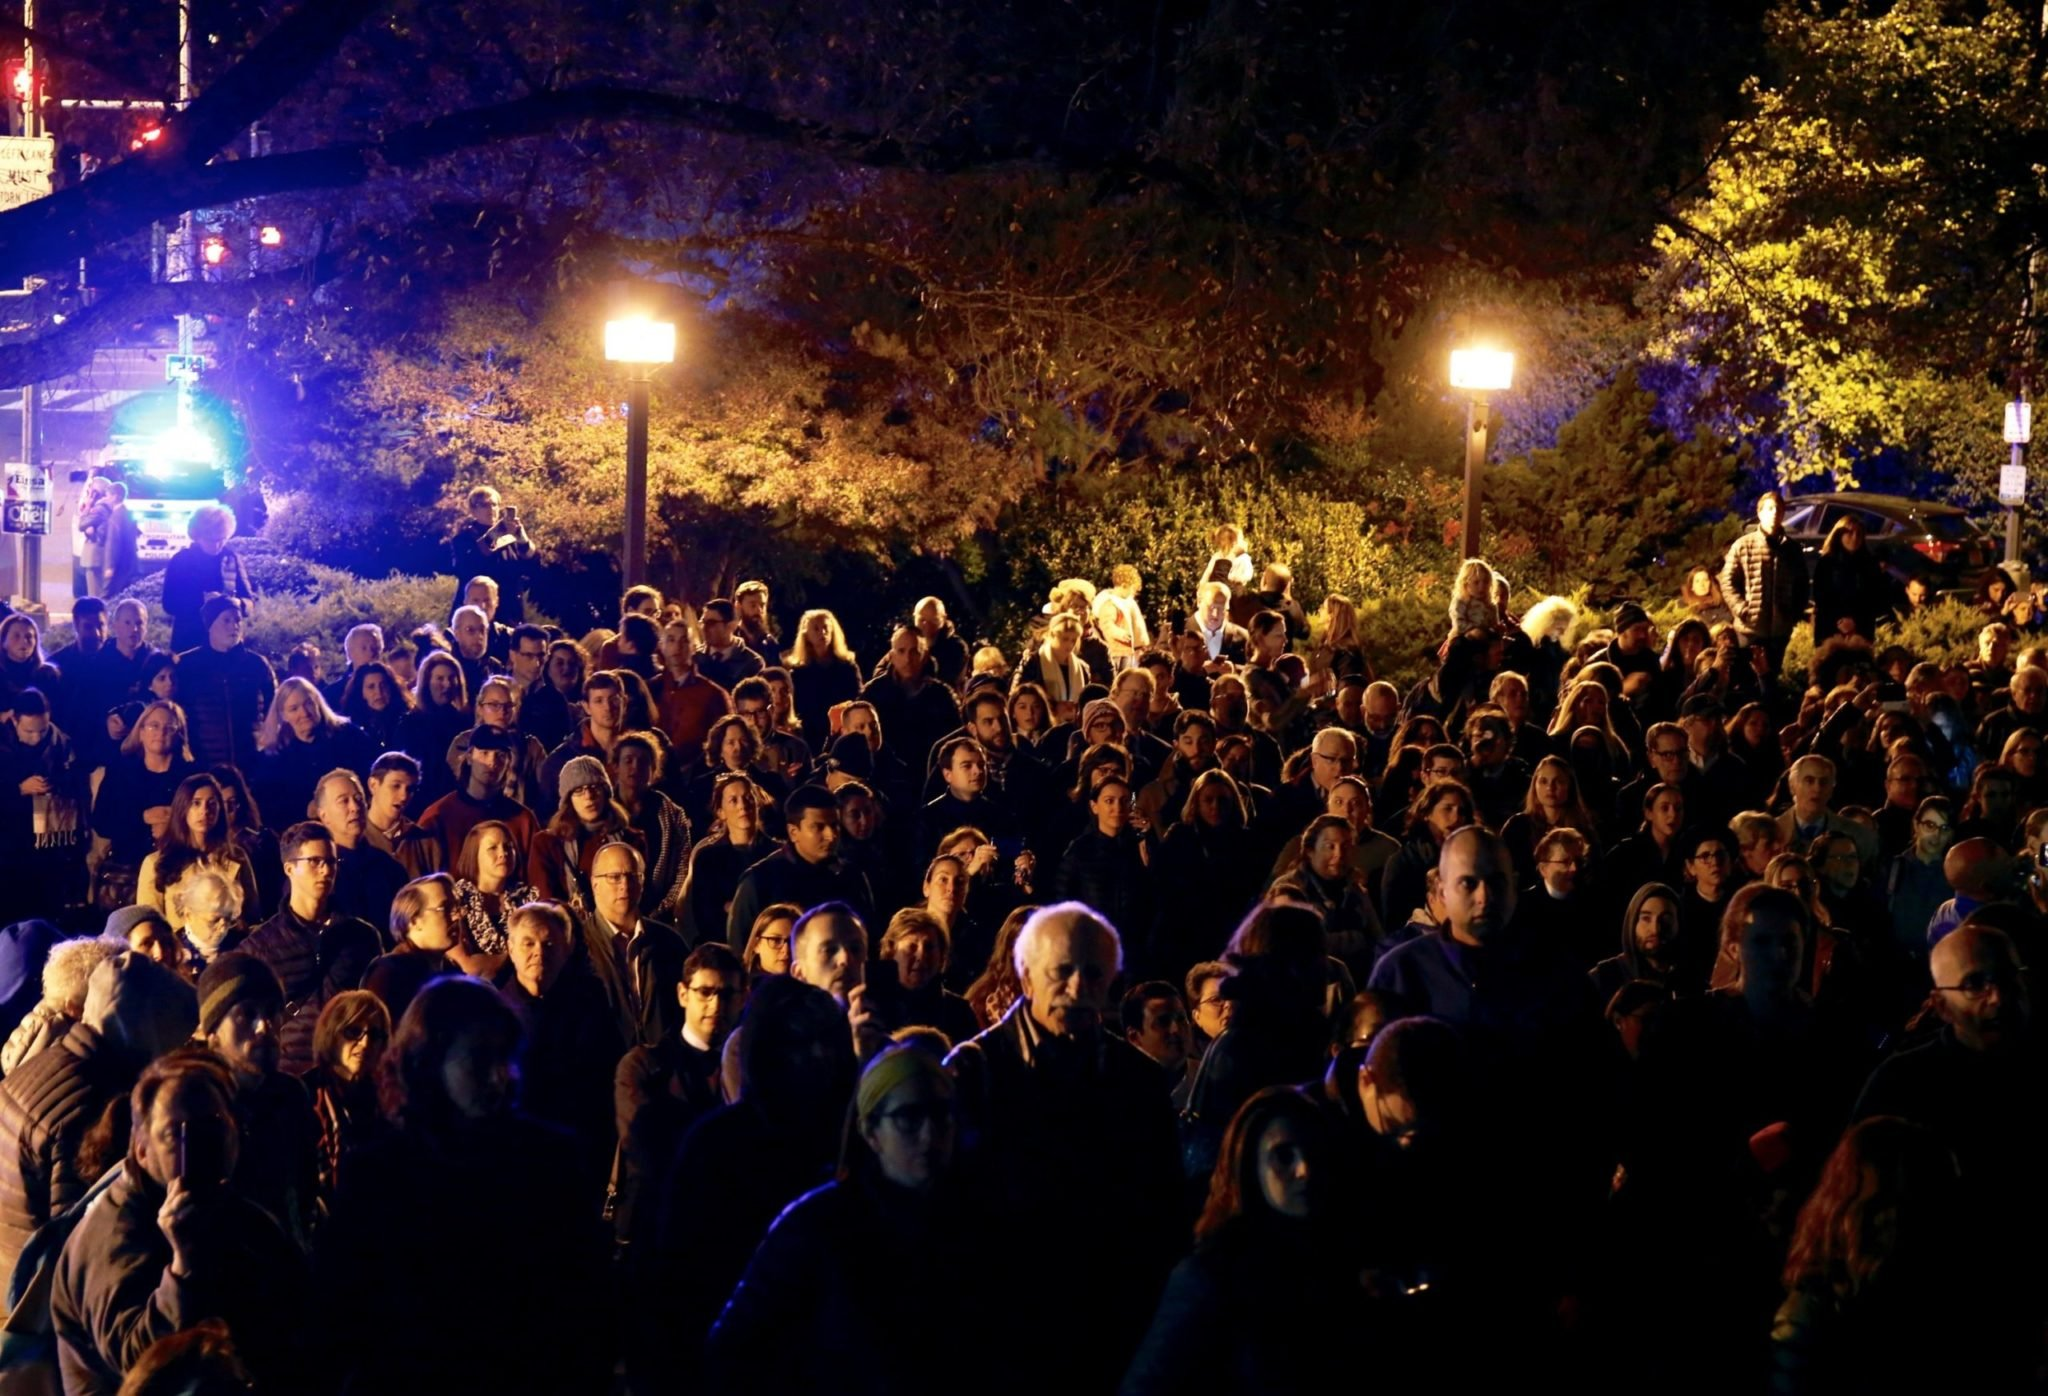 PHOTOS: Crowds Fill the Streets During an Interfaith Service at a DC Synagogue